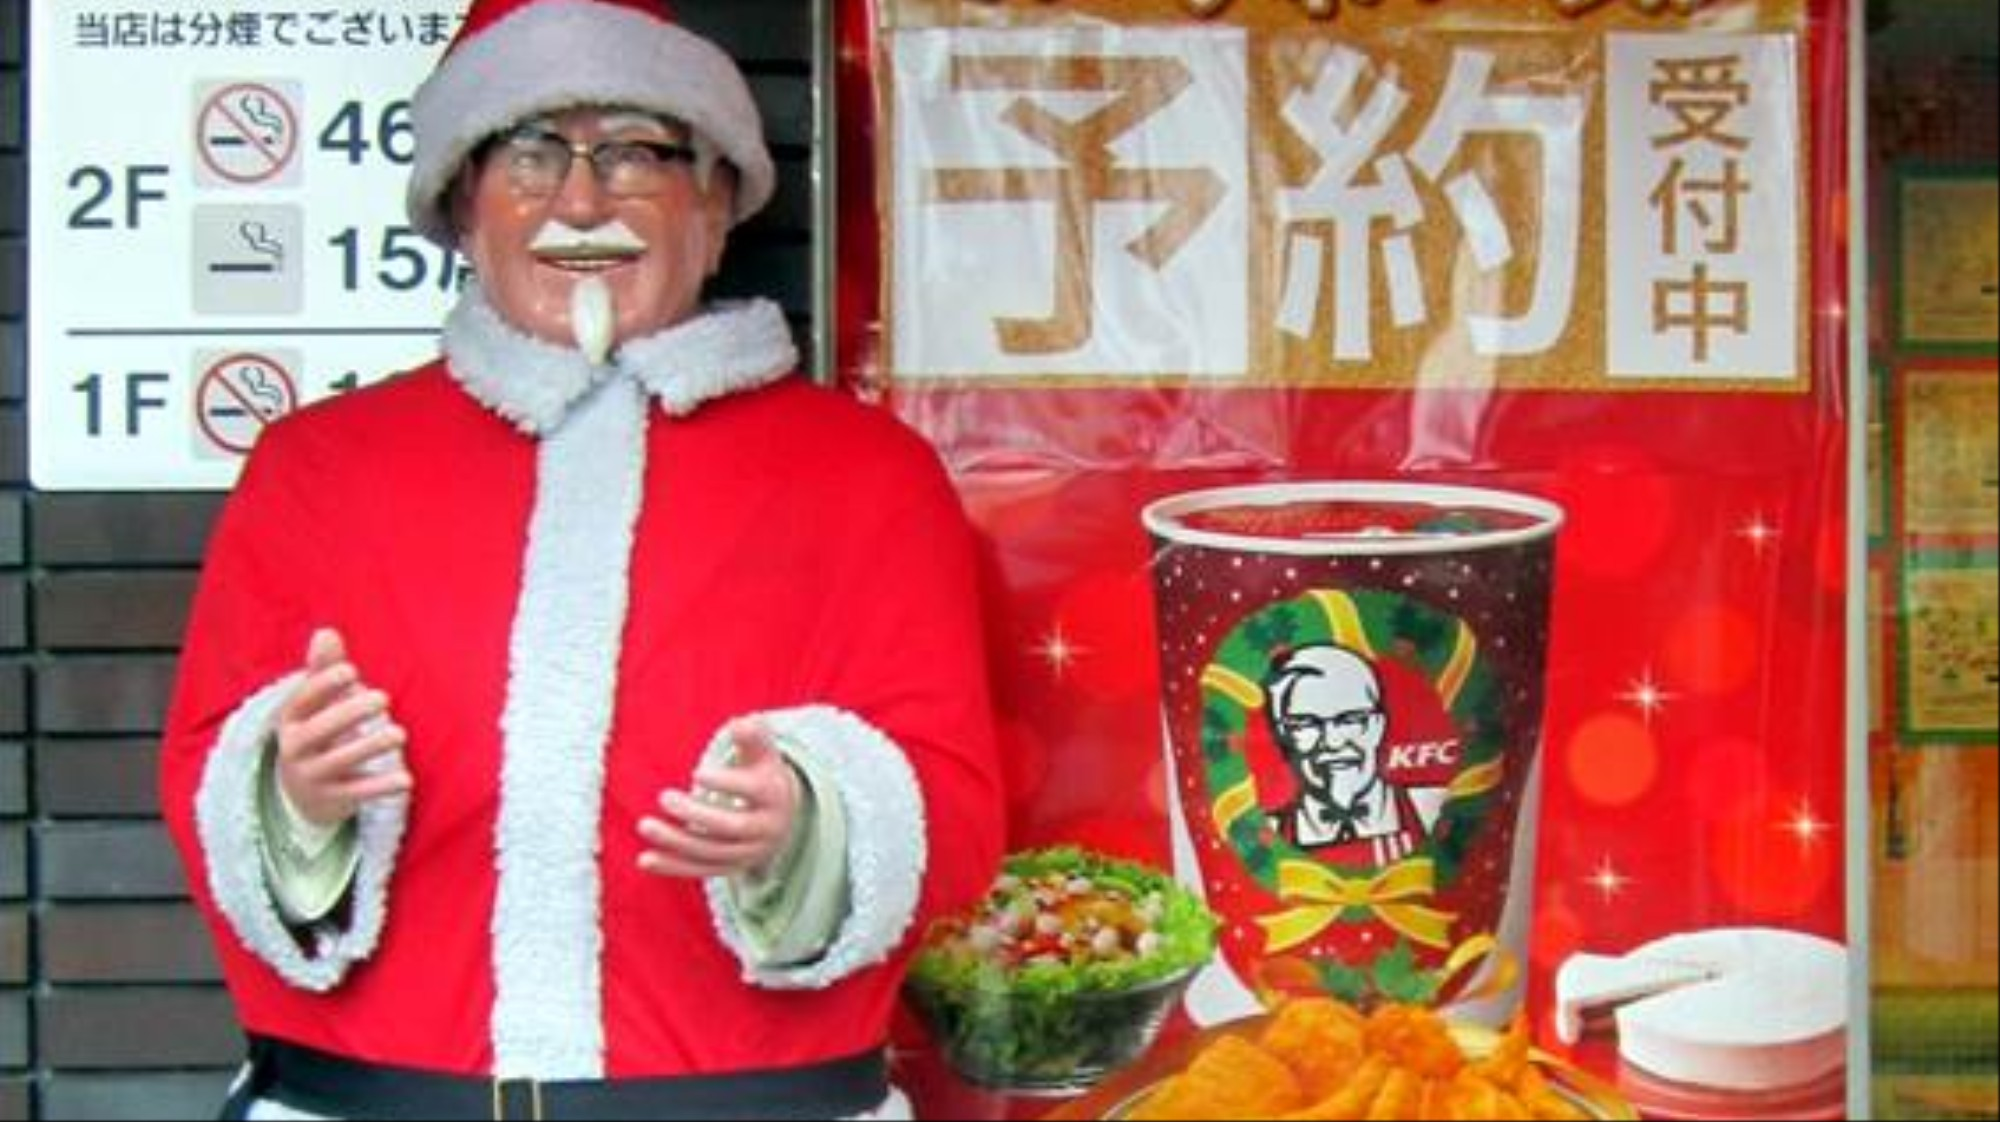 Is Kfc Open On Christmas 2020 KFC for Christmas in Japan | How Fried Chicken Became the